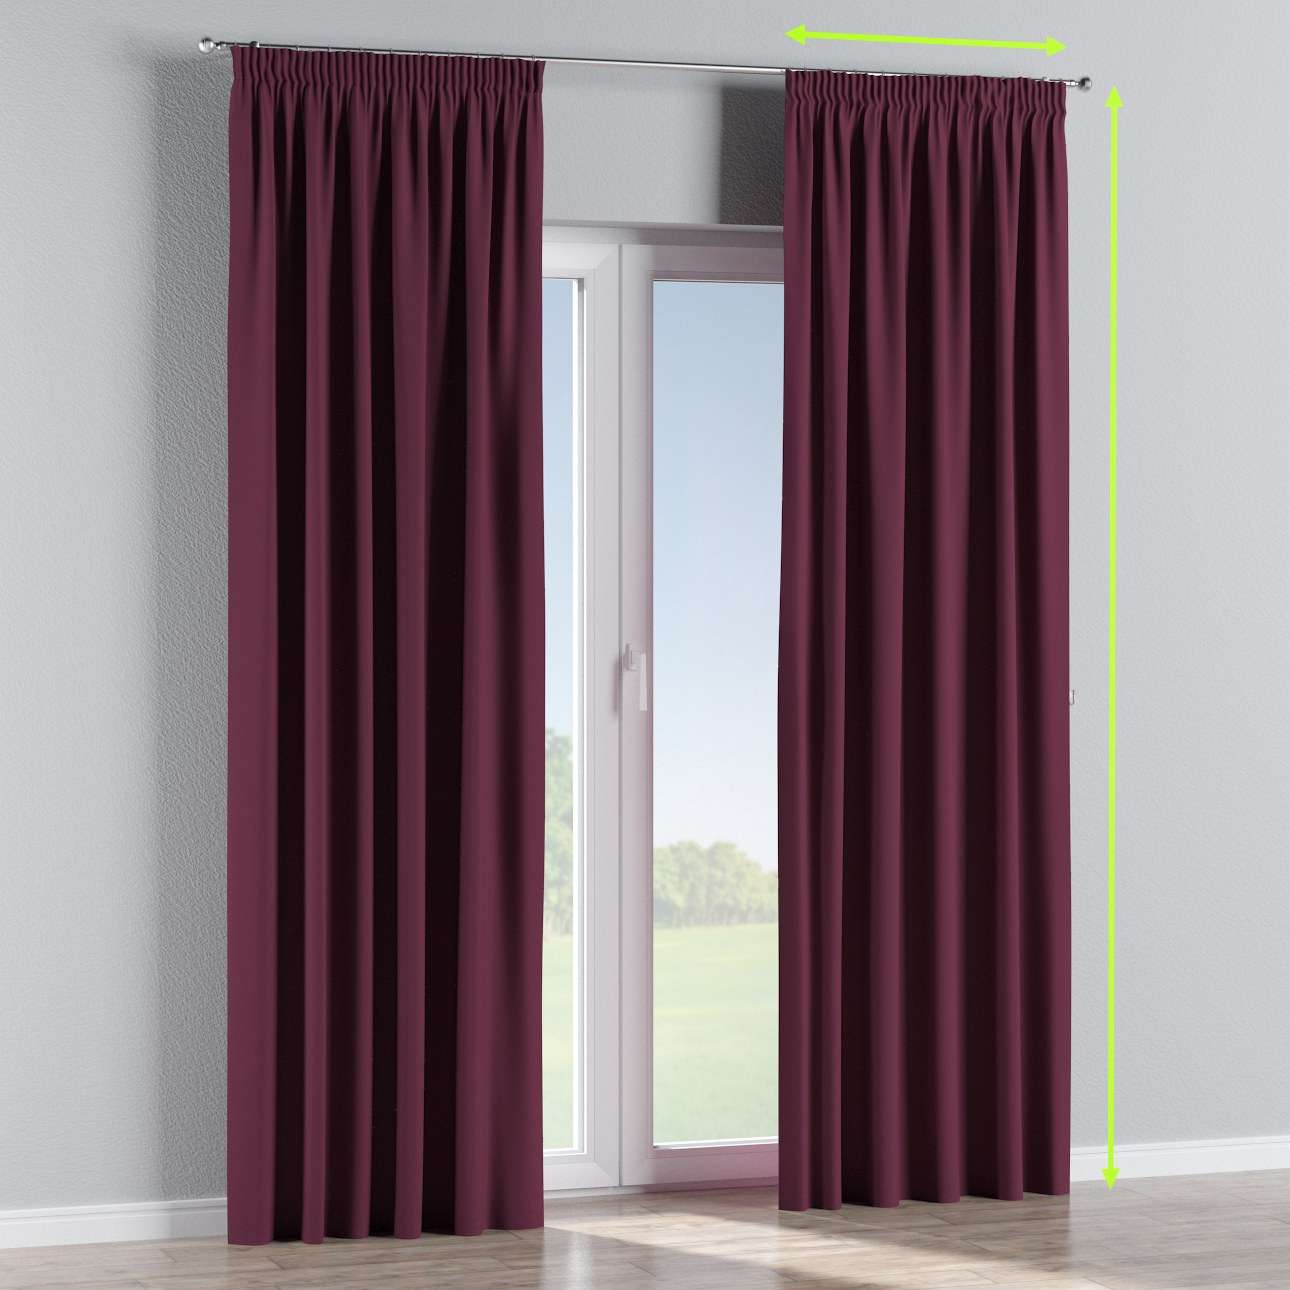 Pencil pleat curtain in collection Blackout, fabric: 269-53